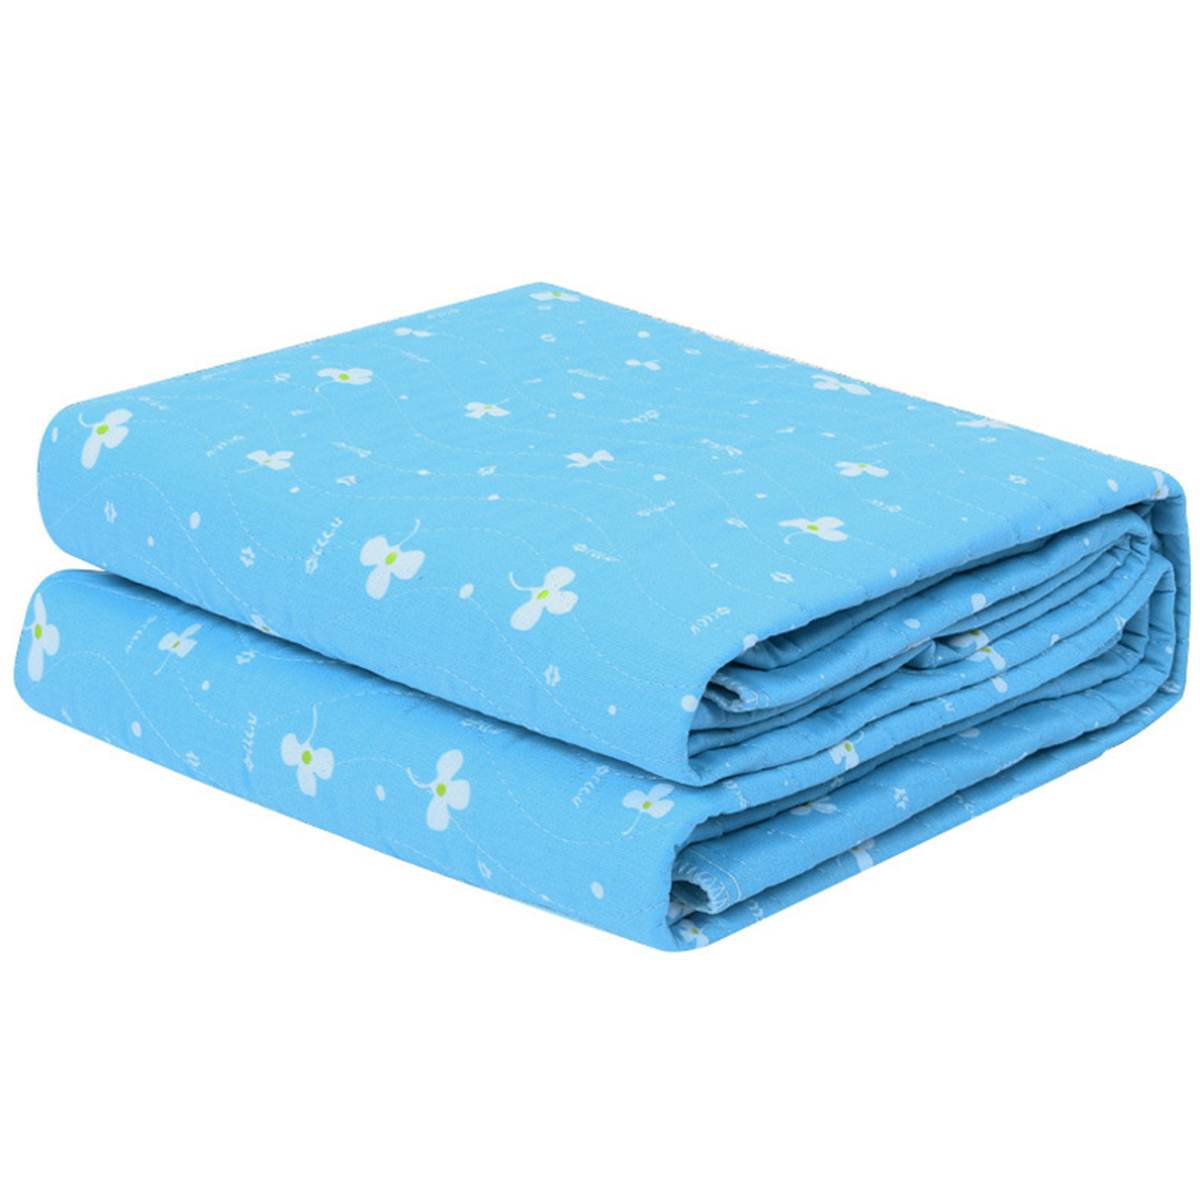 3-layer Reusable Bedsheet Underpad Absorbent Mattress Protector Washable Urinal Mat Diaper Waterproof Kid Adult Incontinence Pad